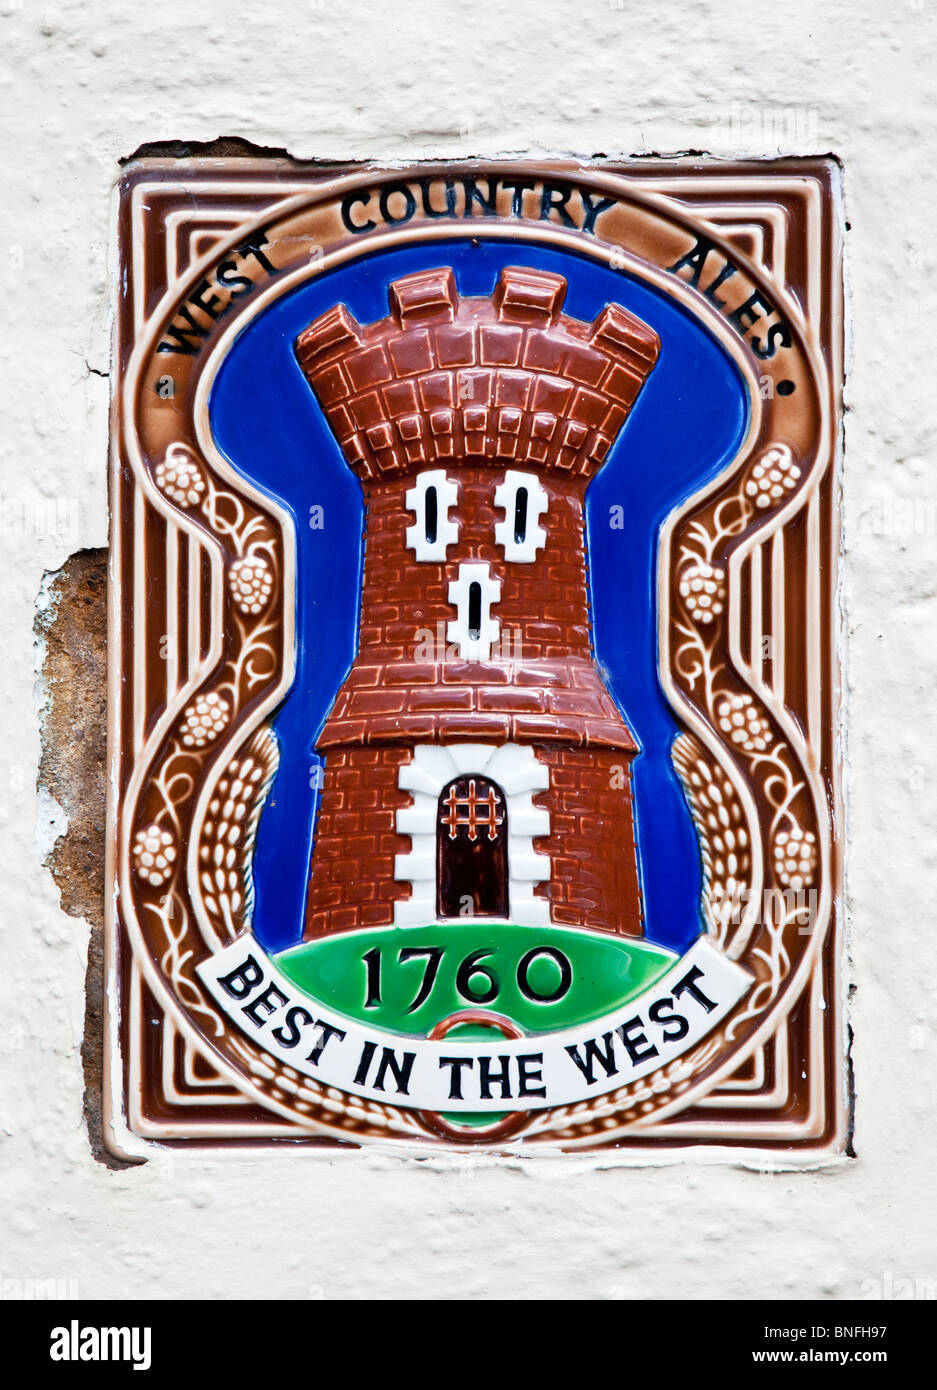 Ceramic wall plaque set into a whitewashed wall advetising a brewery, West Country Ales - Stock Image